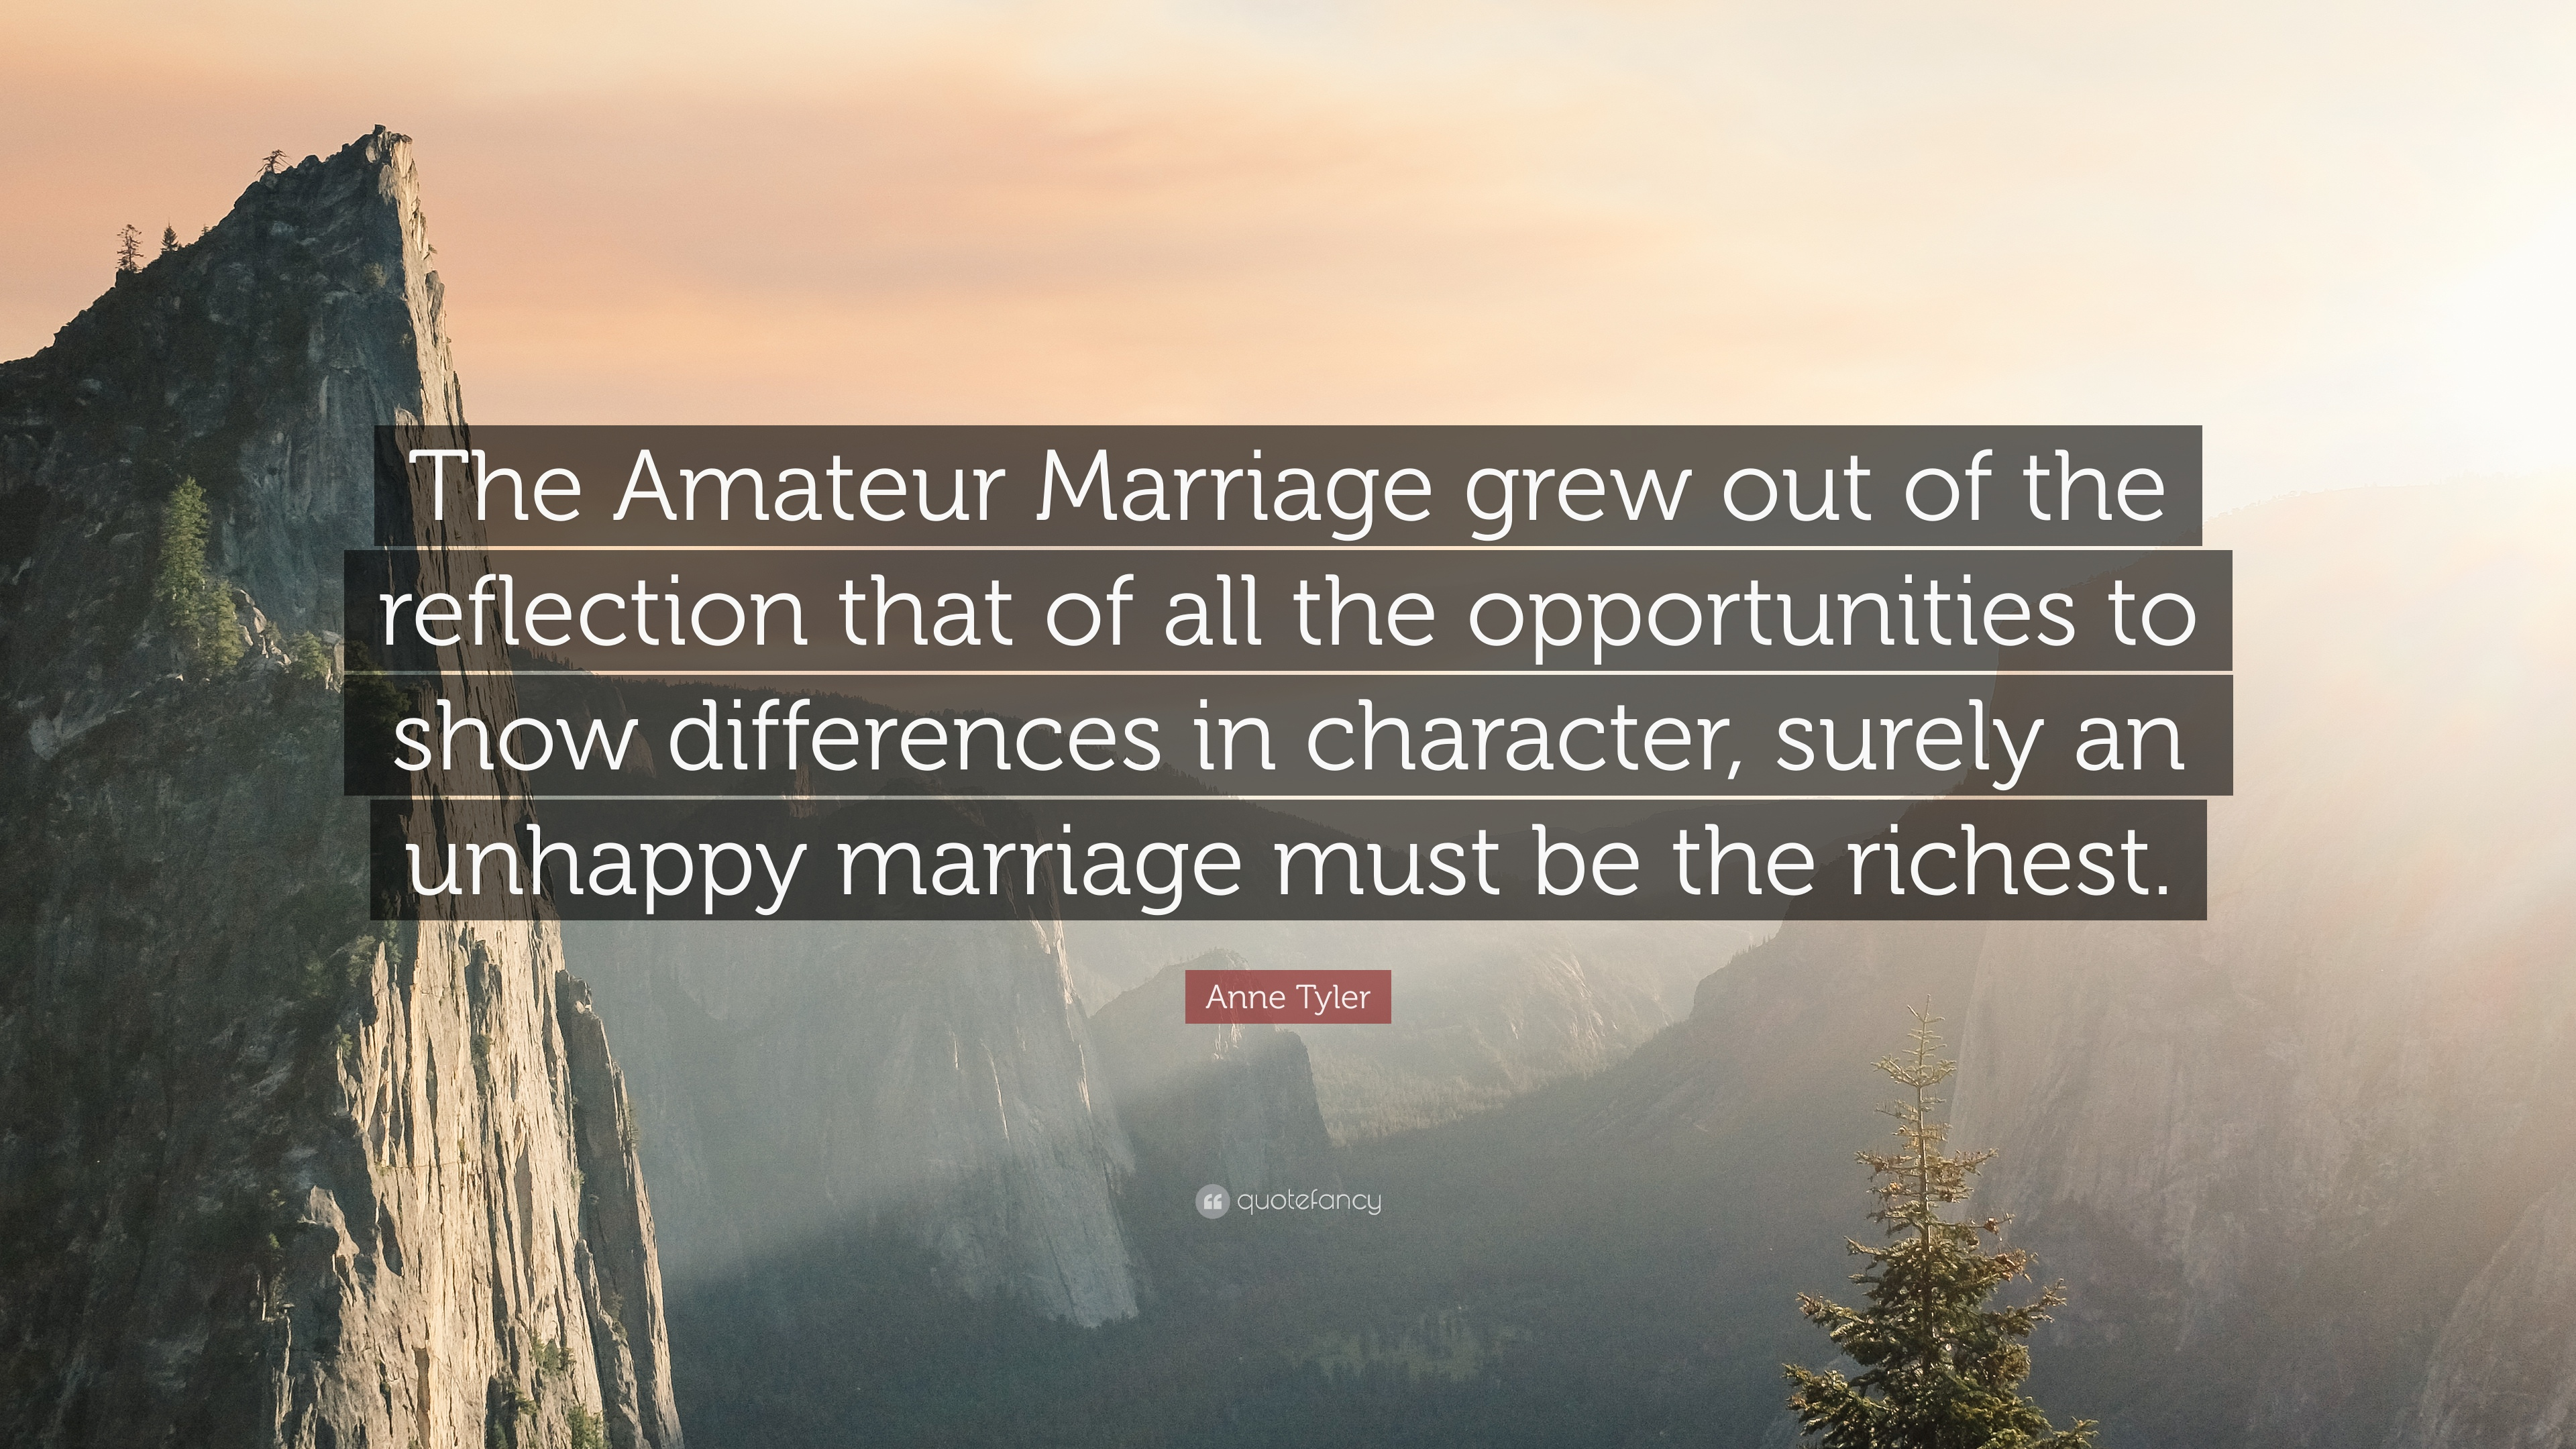 Consider, the amateur marriage